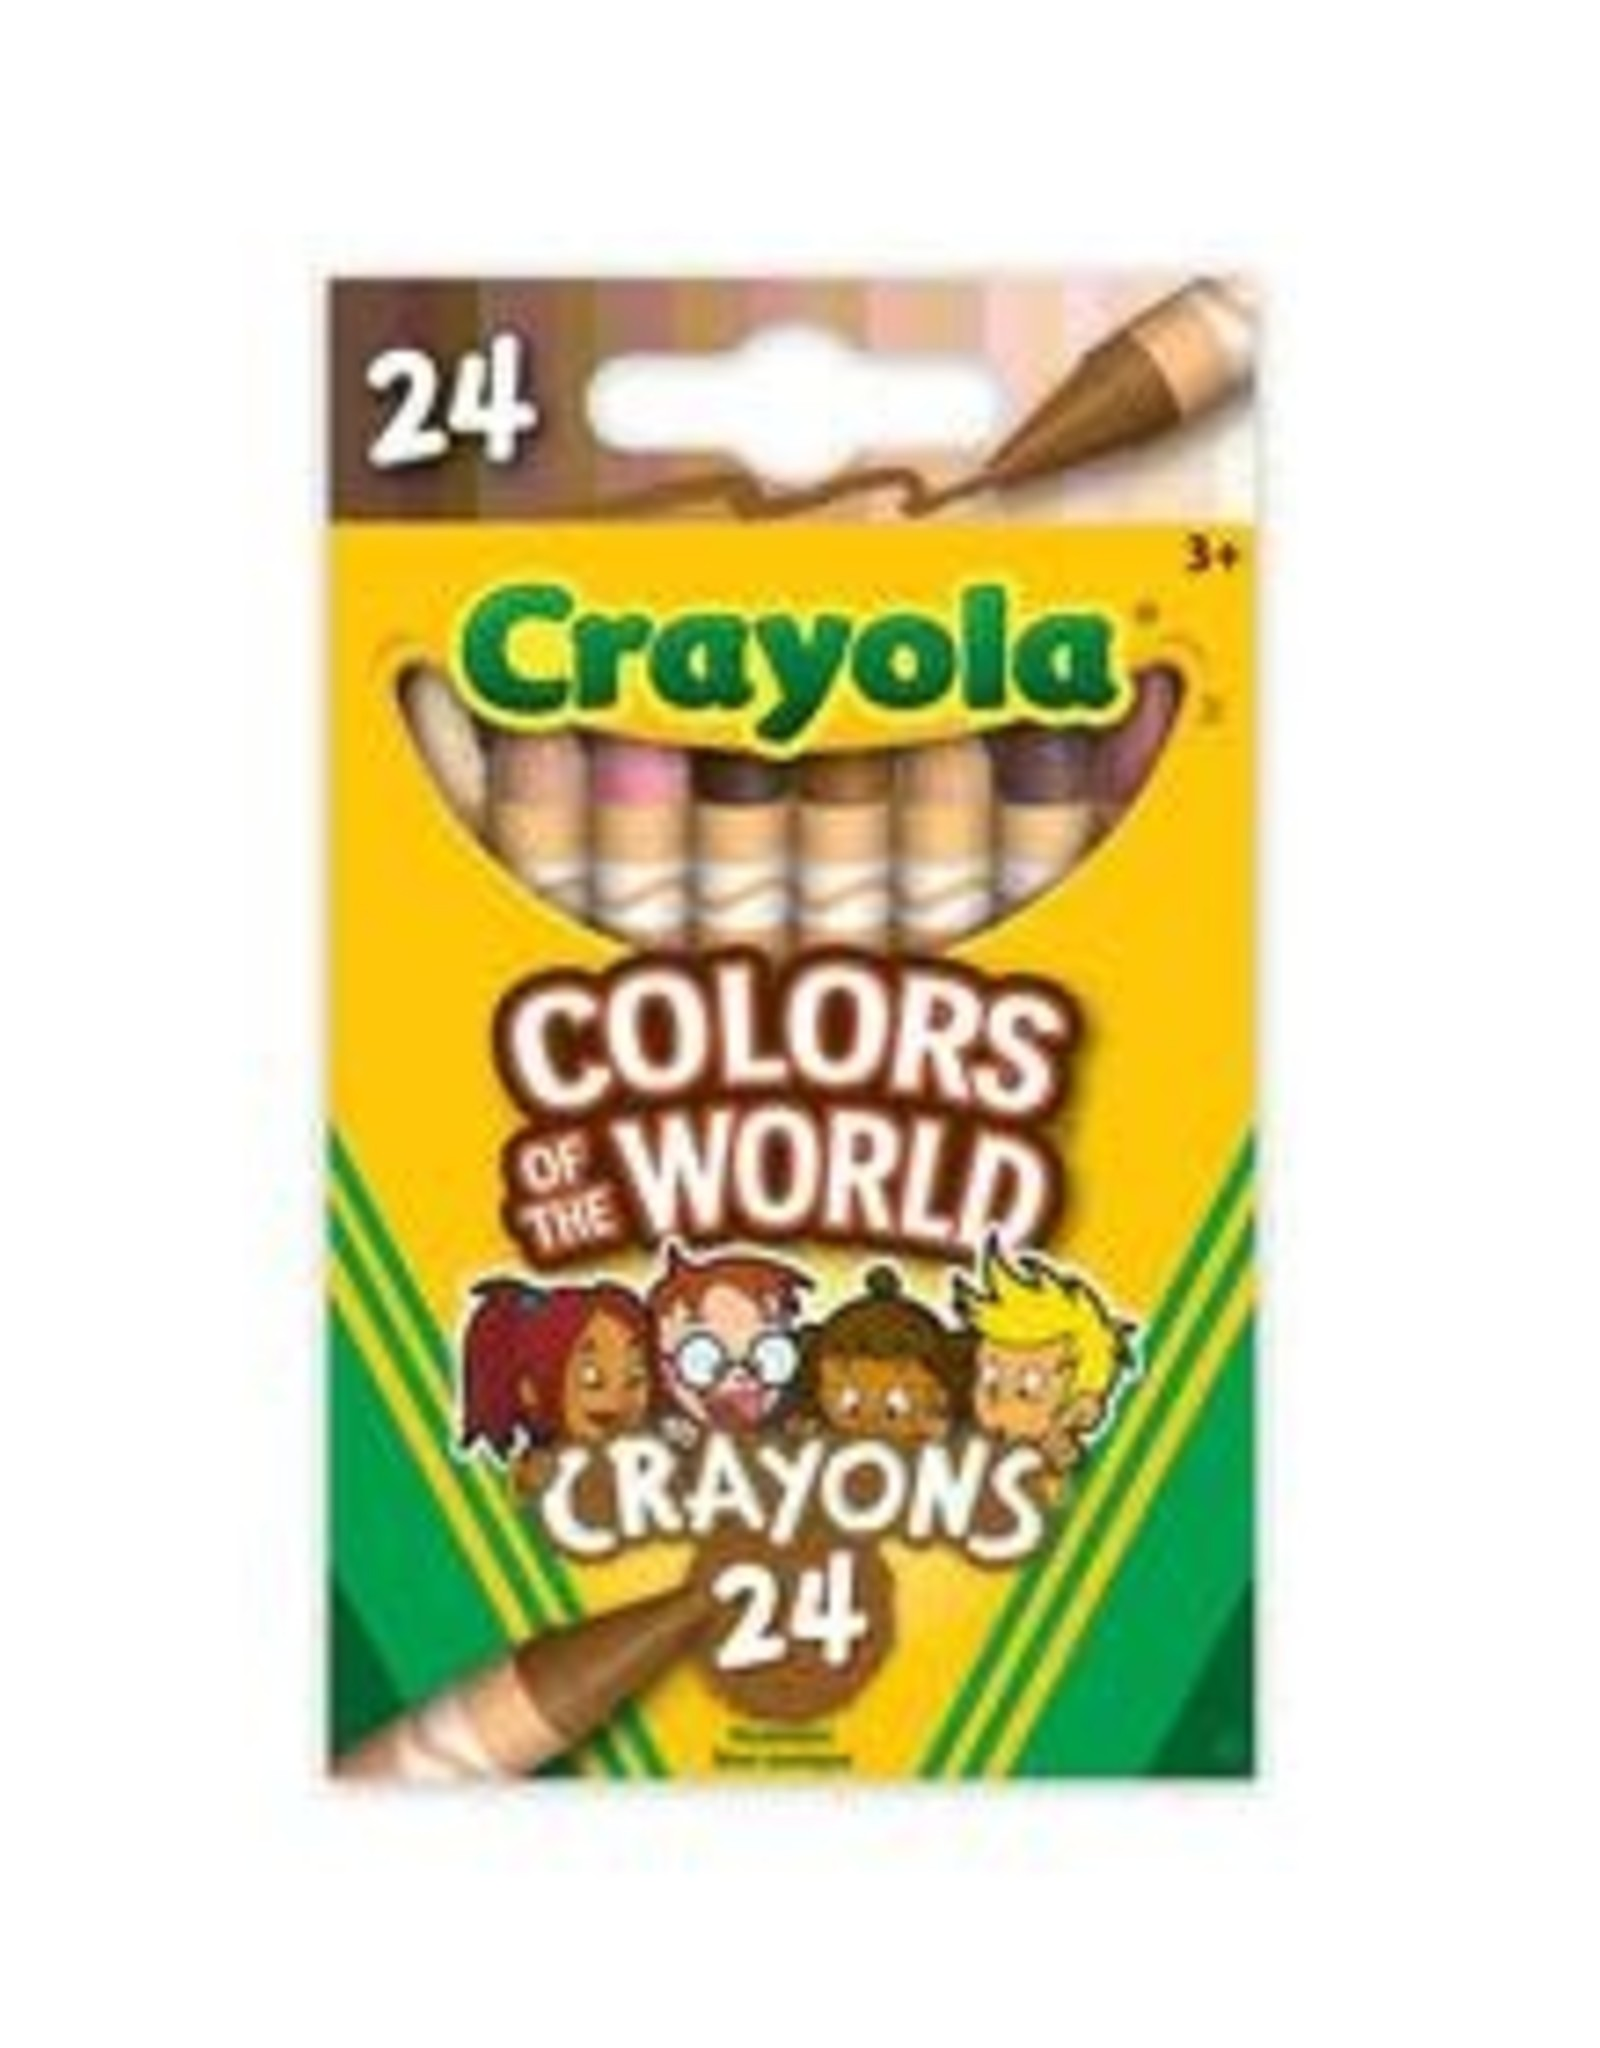 Crayola Colors of the World Crayons, 24